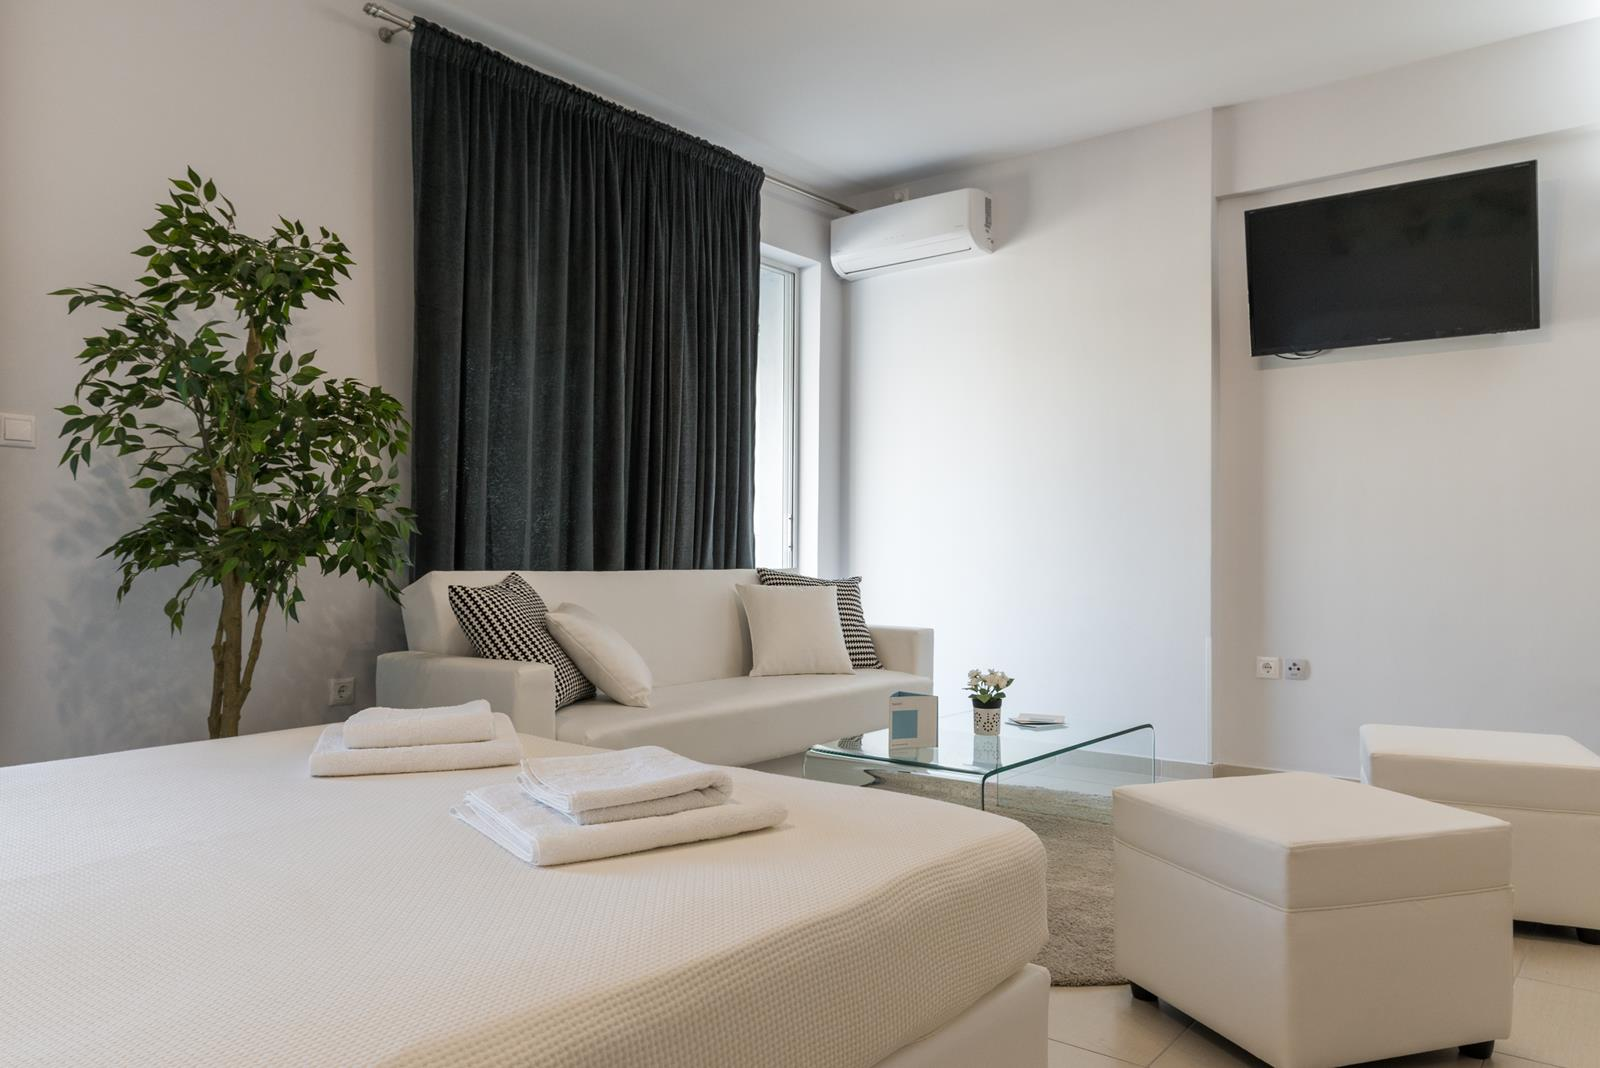 athens accommodation - Alekos Apartments & Suites